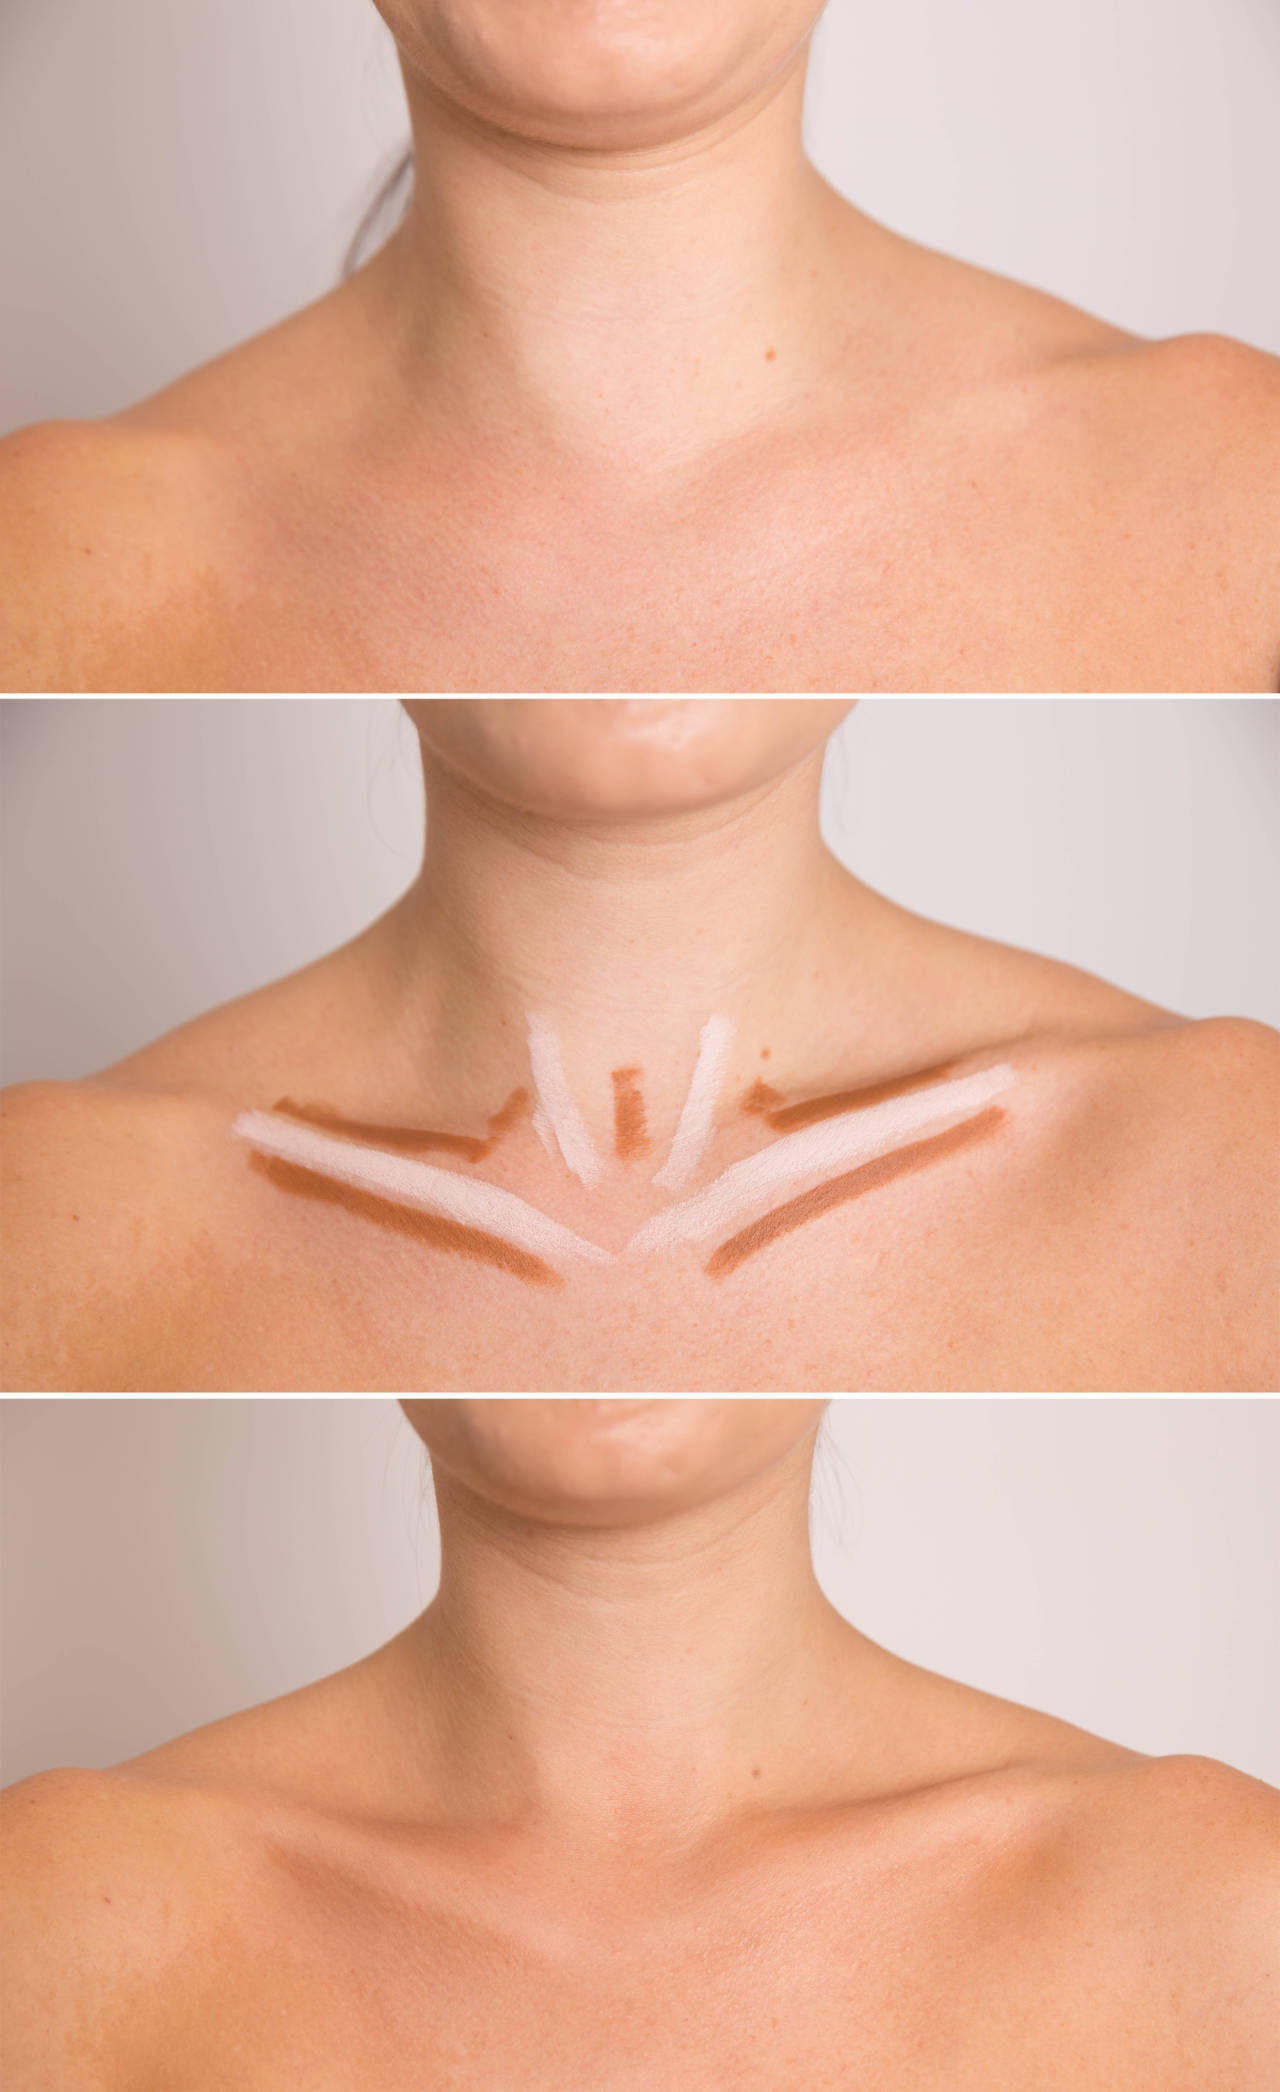 Intensify your collarbone for a sexy nighttime look by shrugging your shoulders up, tracing the natural contours with a concealer two shades darker than your skin tone, and then highlighting them with concealer two shades lighter.